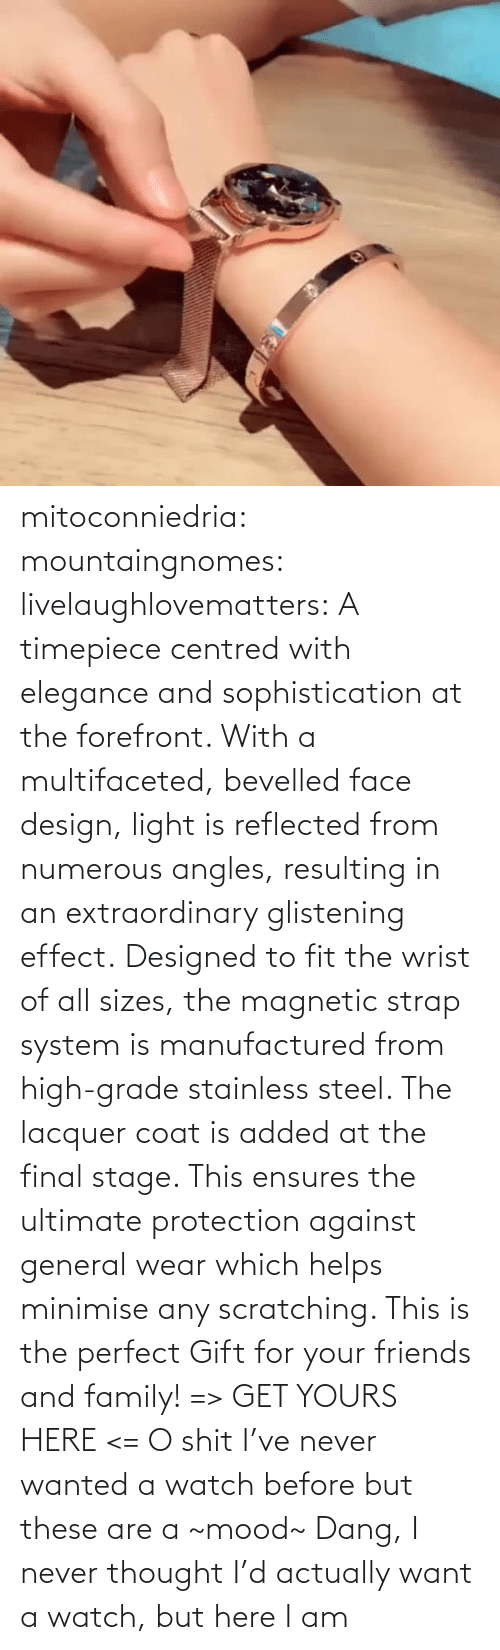 post: mitoconniedria: mountaingnomes:   livelaughlovematters:  A timepiece centred with elegance and sophistication at the forefront. With a multifaceted, bevelled face design, light is reflected from numerous angles, resulting in an extraordinary glistening effect. Designed to fit the wrist of all sizes, the magnetic strap system is manufactured from high-grade stainless steel. The lacquer coat is added at the final stage. This ensures the ultimate protection against general wear which helps minimise any scratching. This is the perfect Gift for your friends and family! => GET YOURS HERE <=  O shit I've never wanted a watch before but these are a ~mood~    Dang, I never thought I'd actually want a watch, but here I am